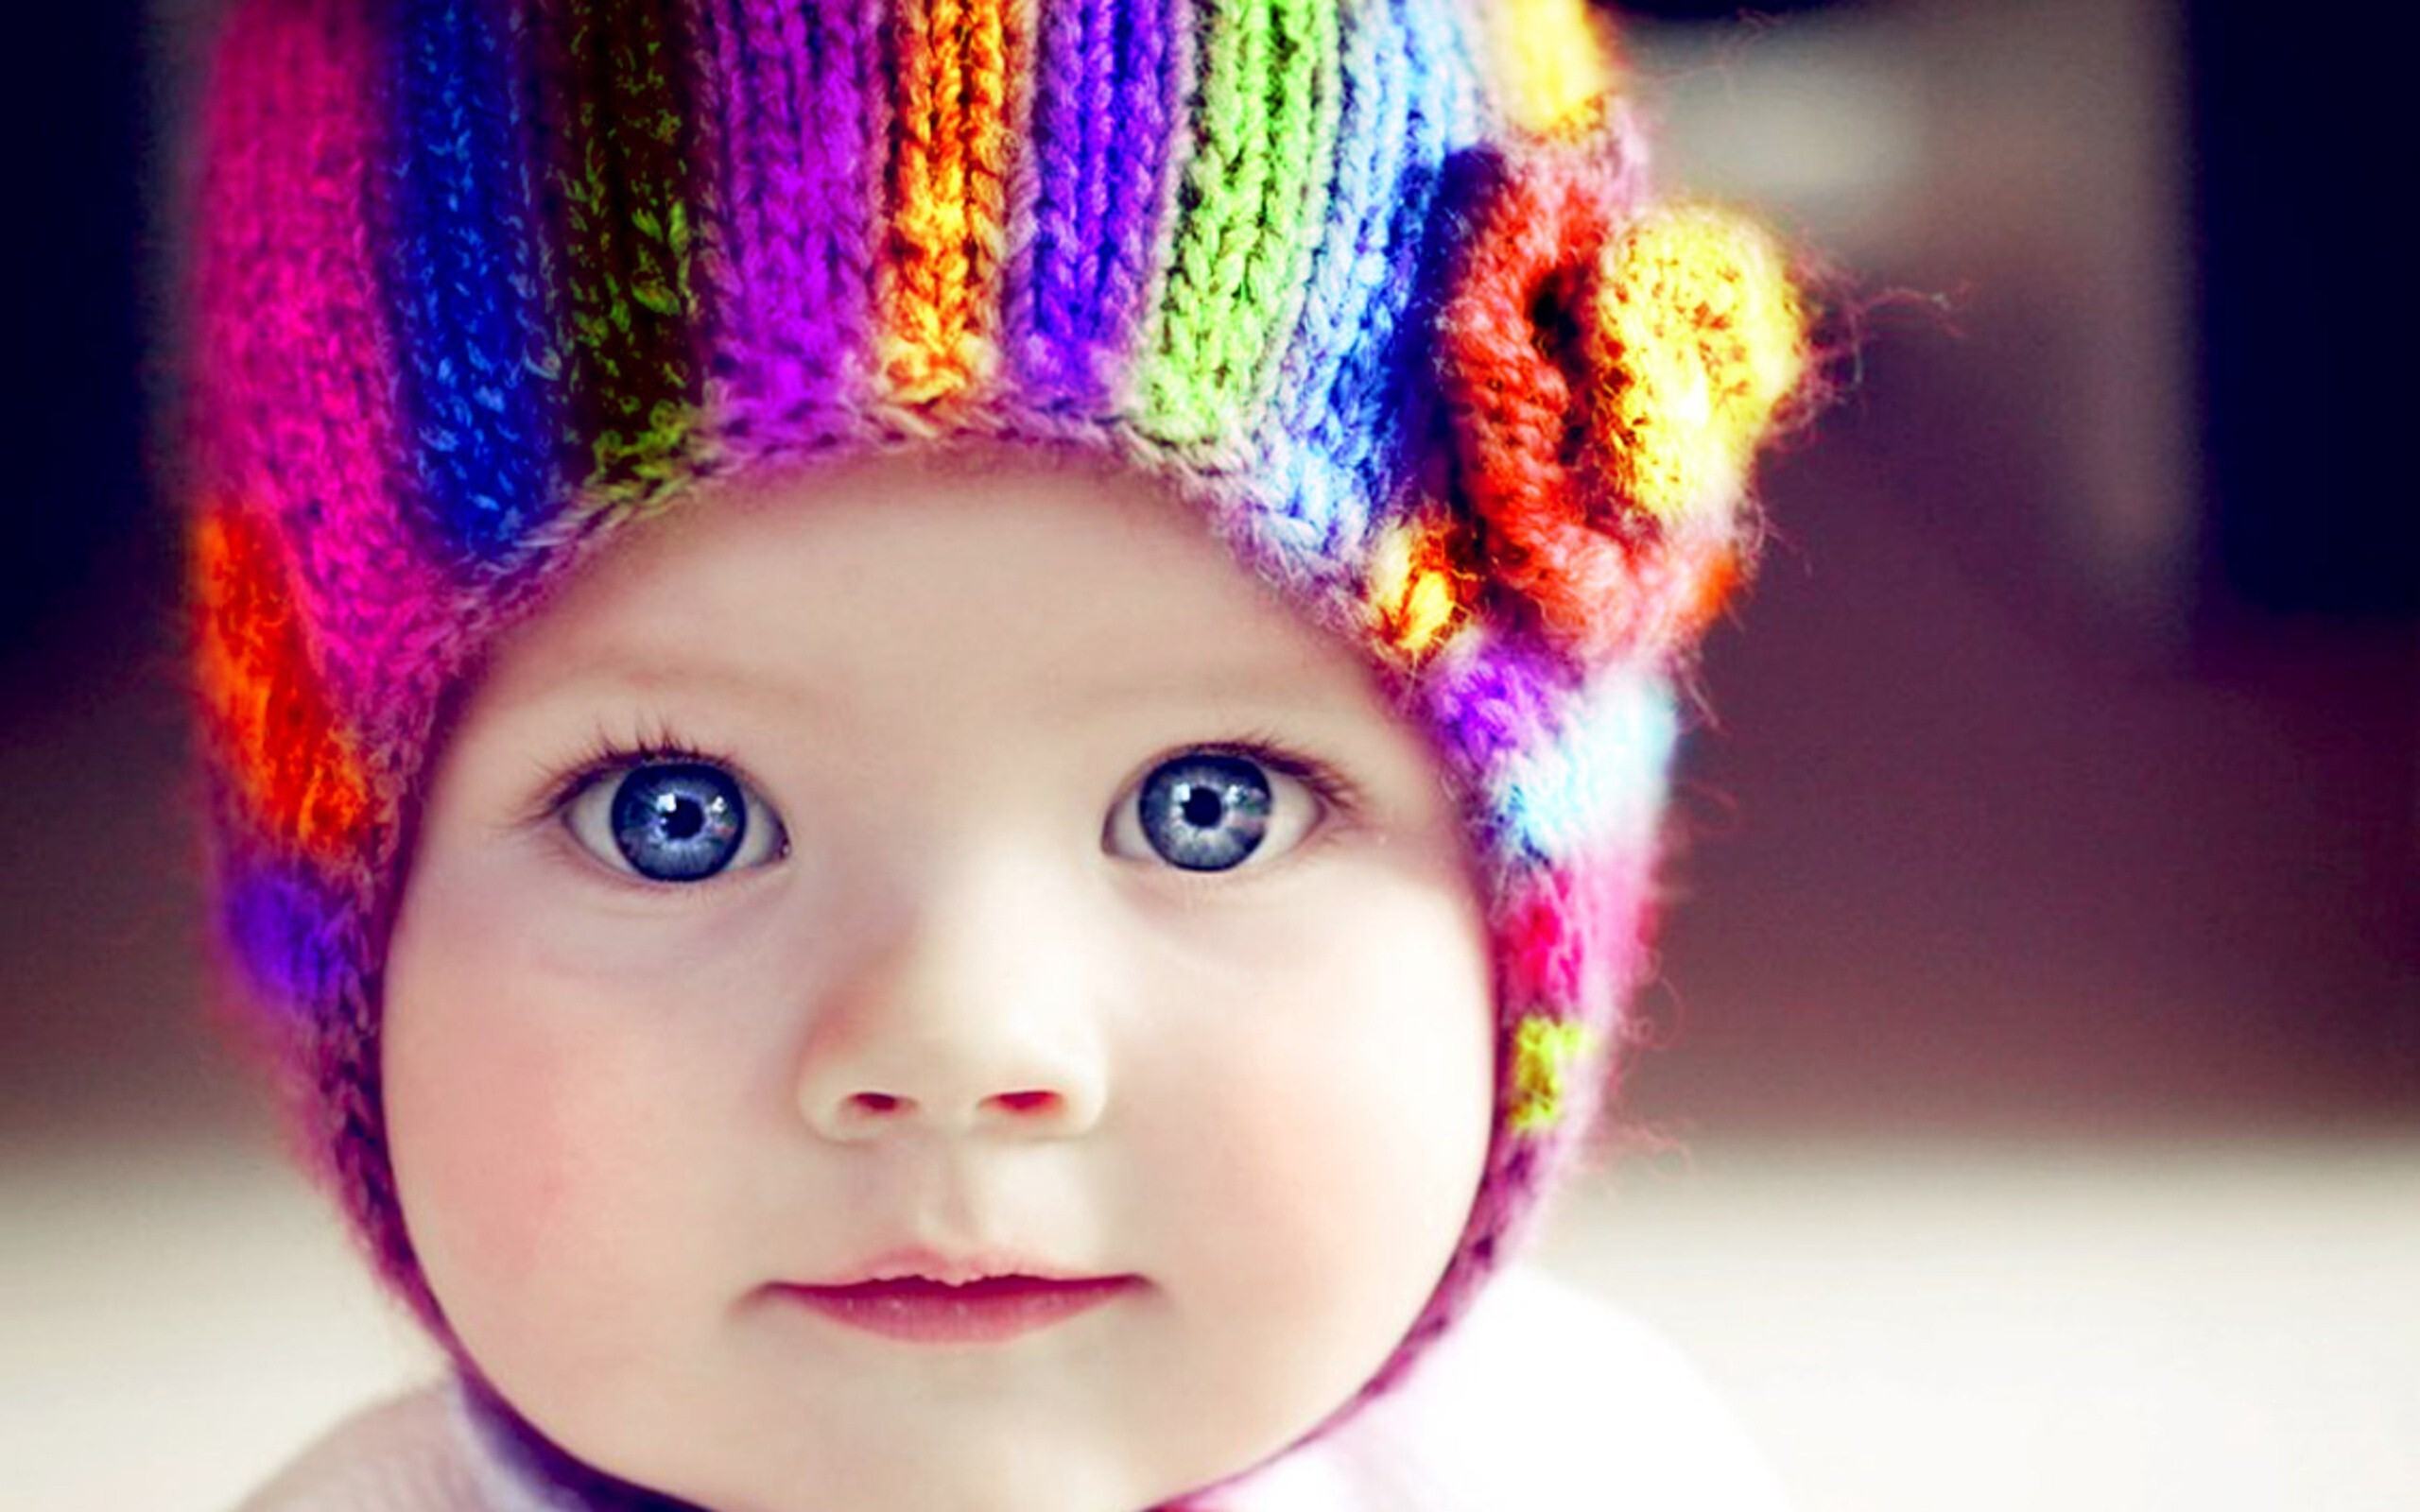 cute colorful baby with blue eye wallpapers hd wallpapers